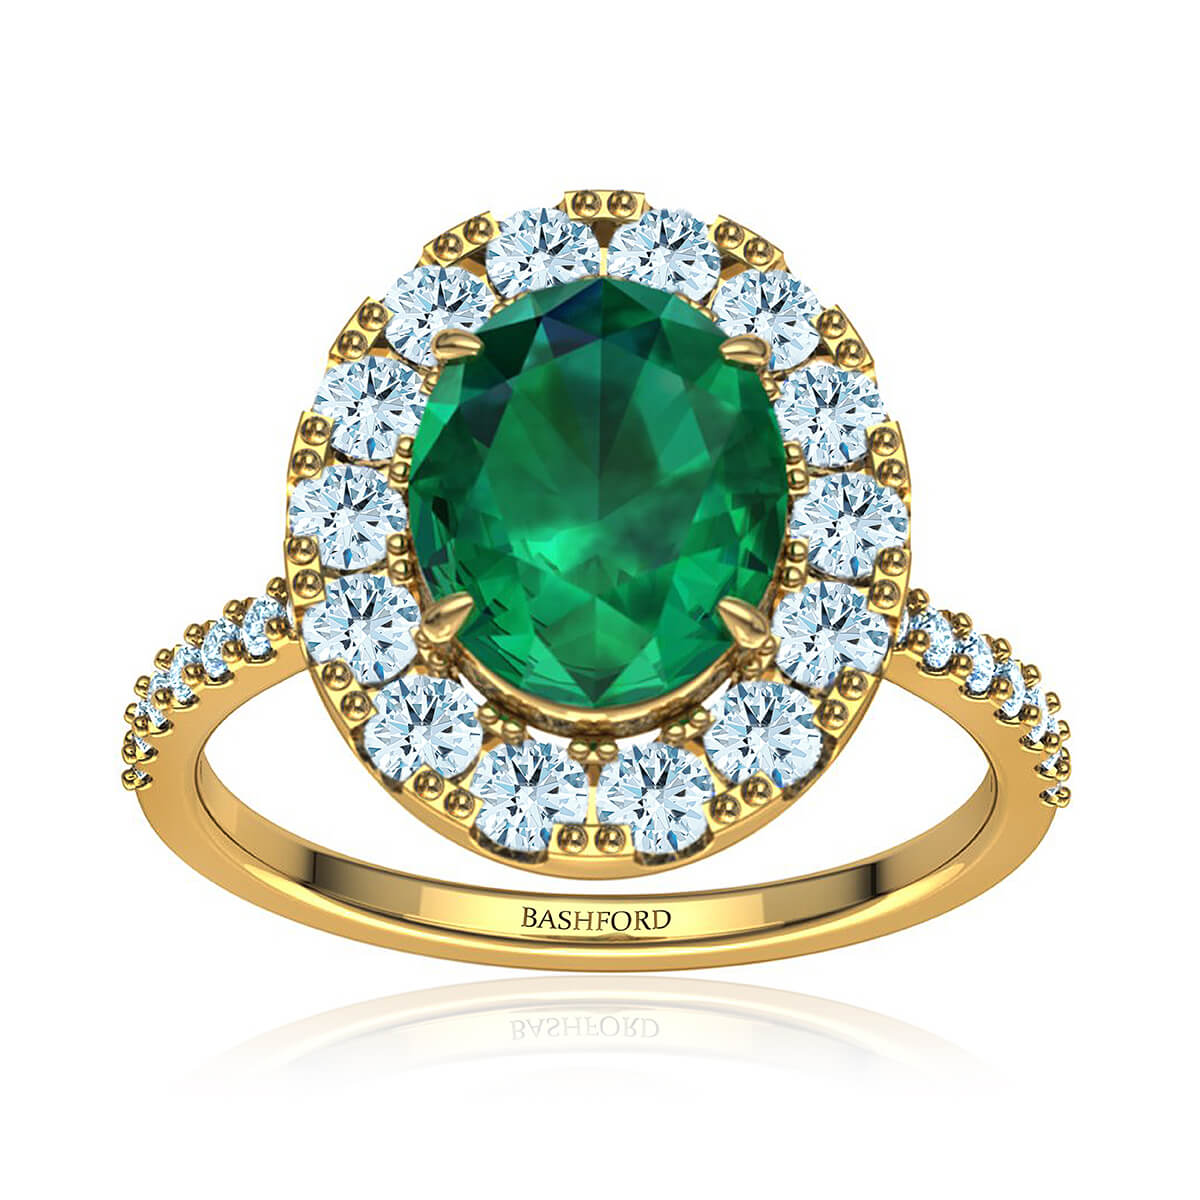 Marielyn Emerald Ring (with 1 Carat Oval Emerald)